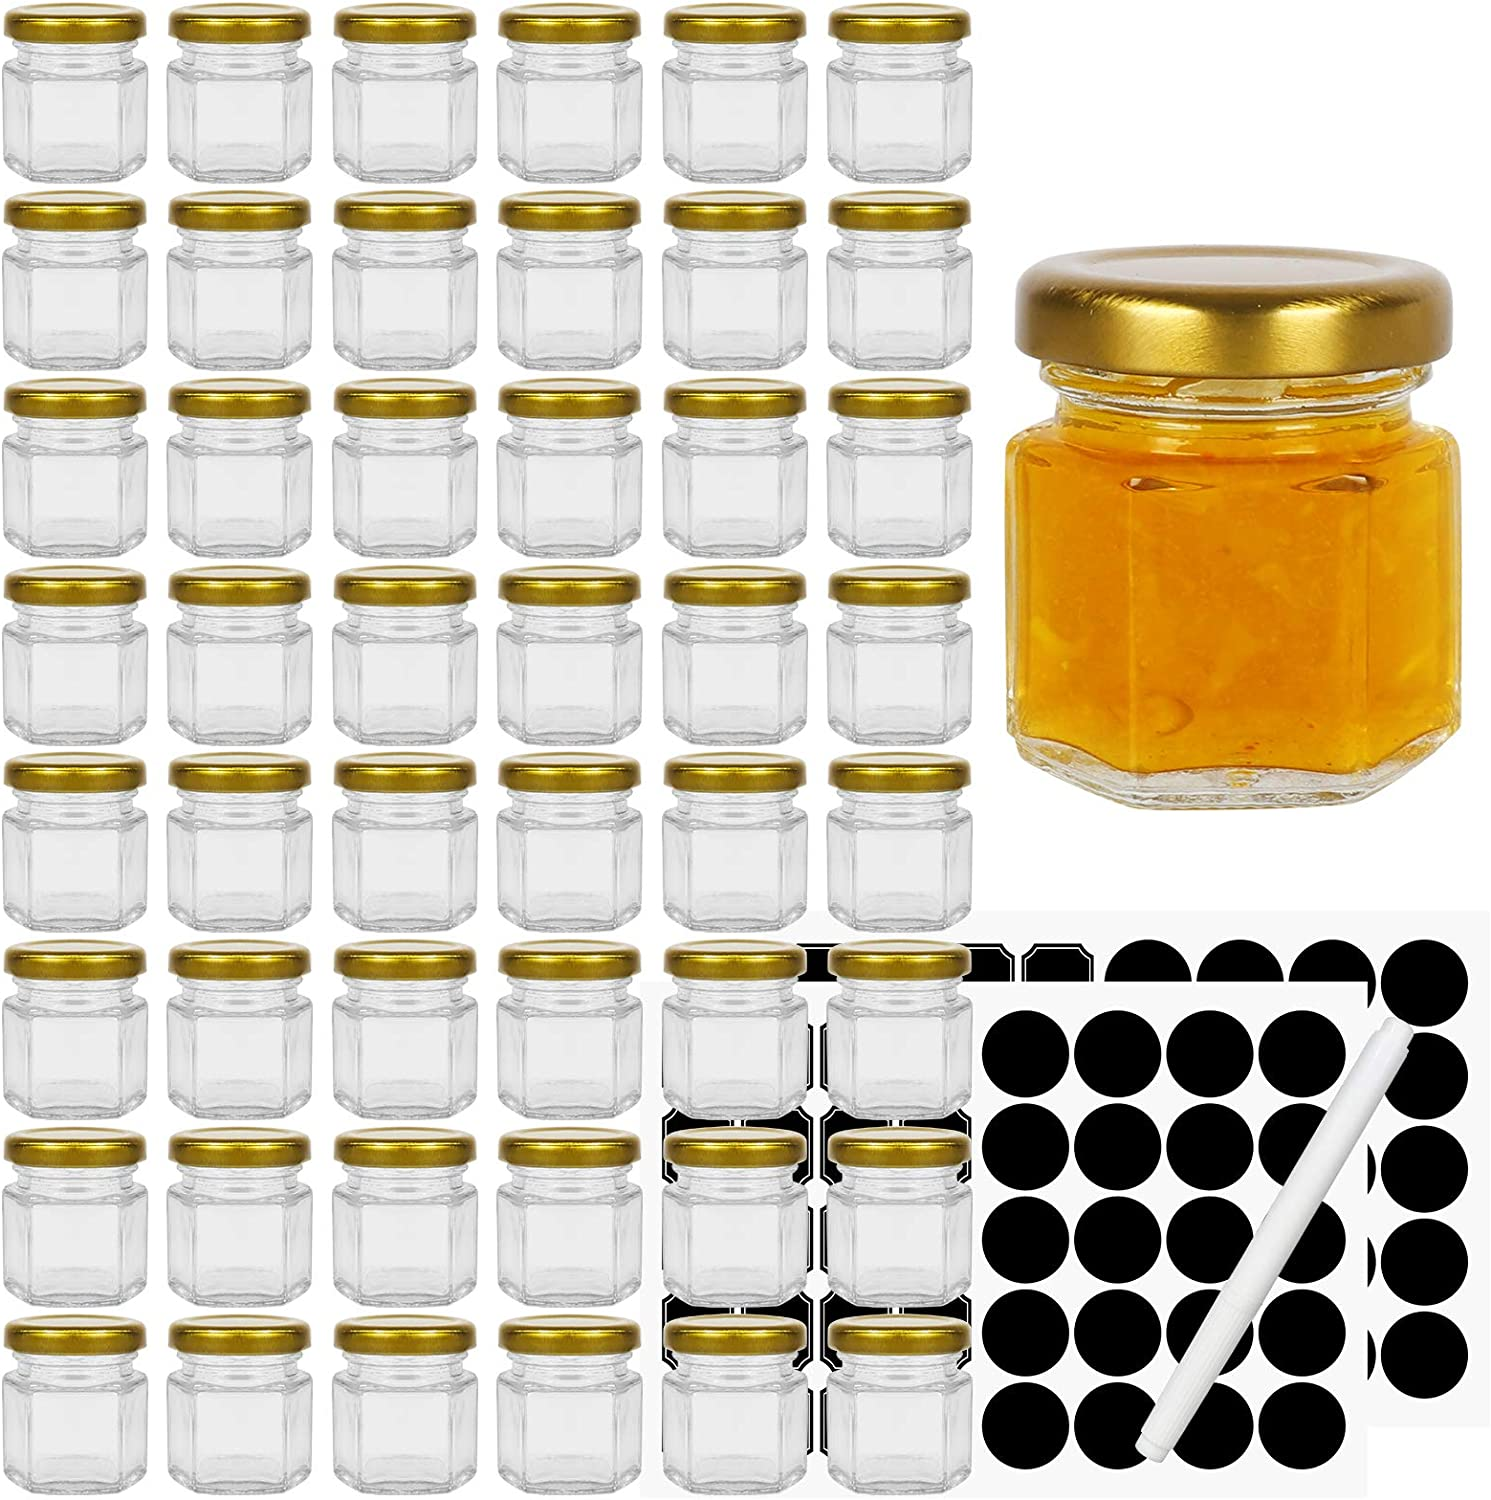 Hexagon Glass Jars with Gold Lids, 48pcs 1.5oz Canning Jars for Jam Honey Jelly Candy Candle Wedding Favors Baby Shower Favors Spice Jars Crafts with 60 chalkboard stickers and one pen for labeling